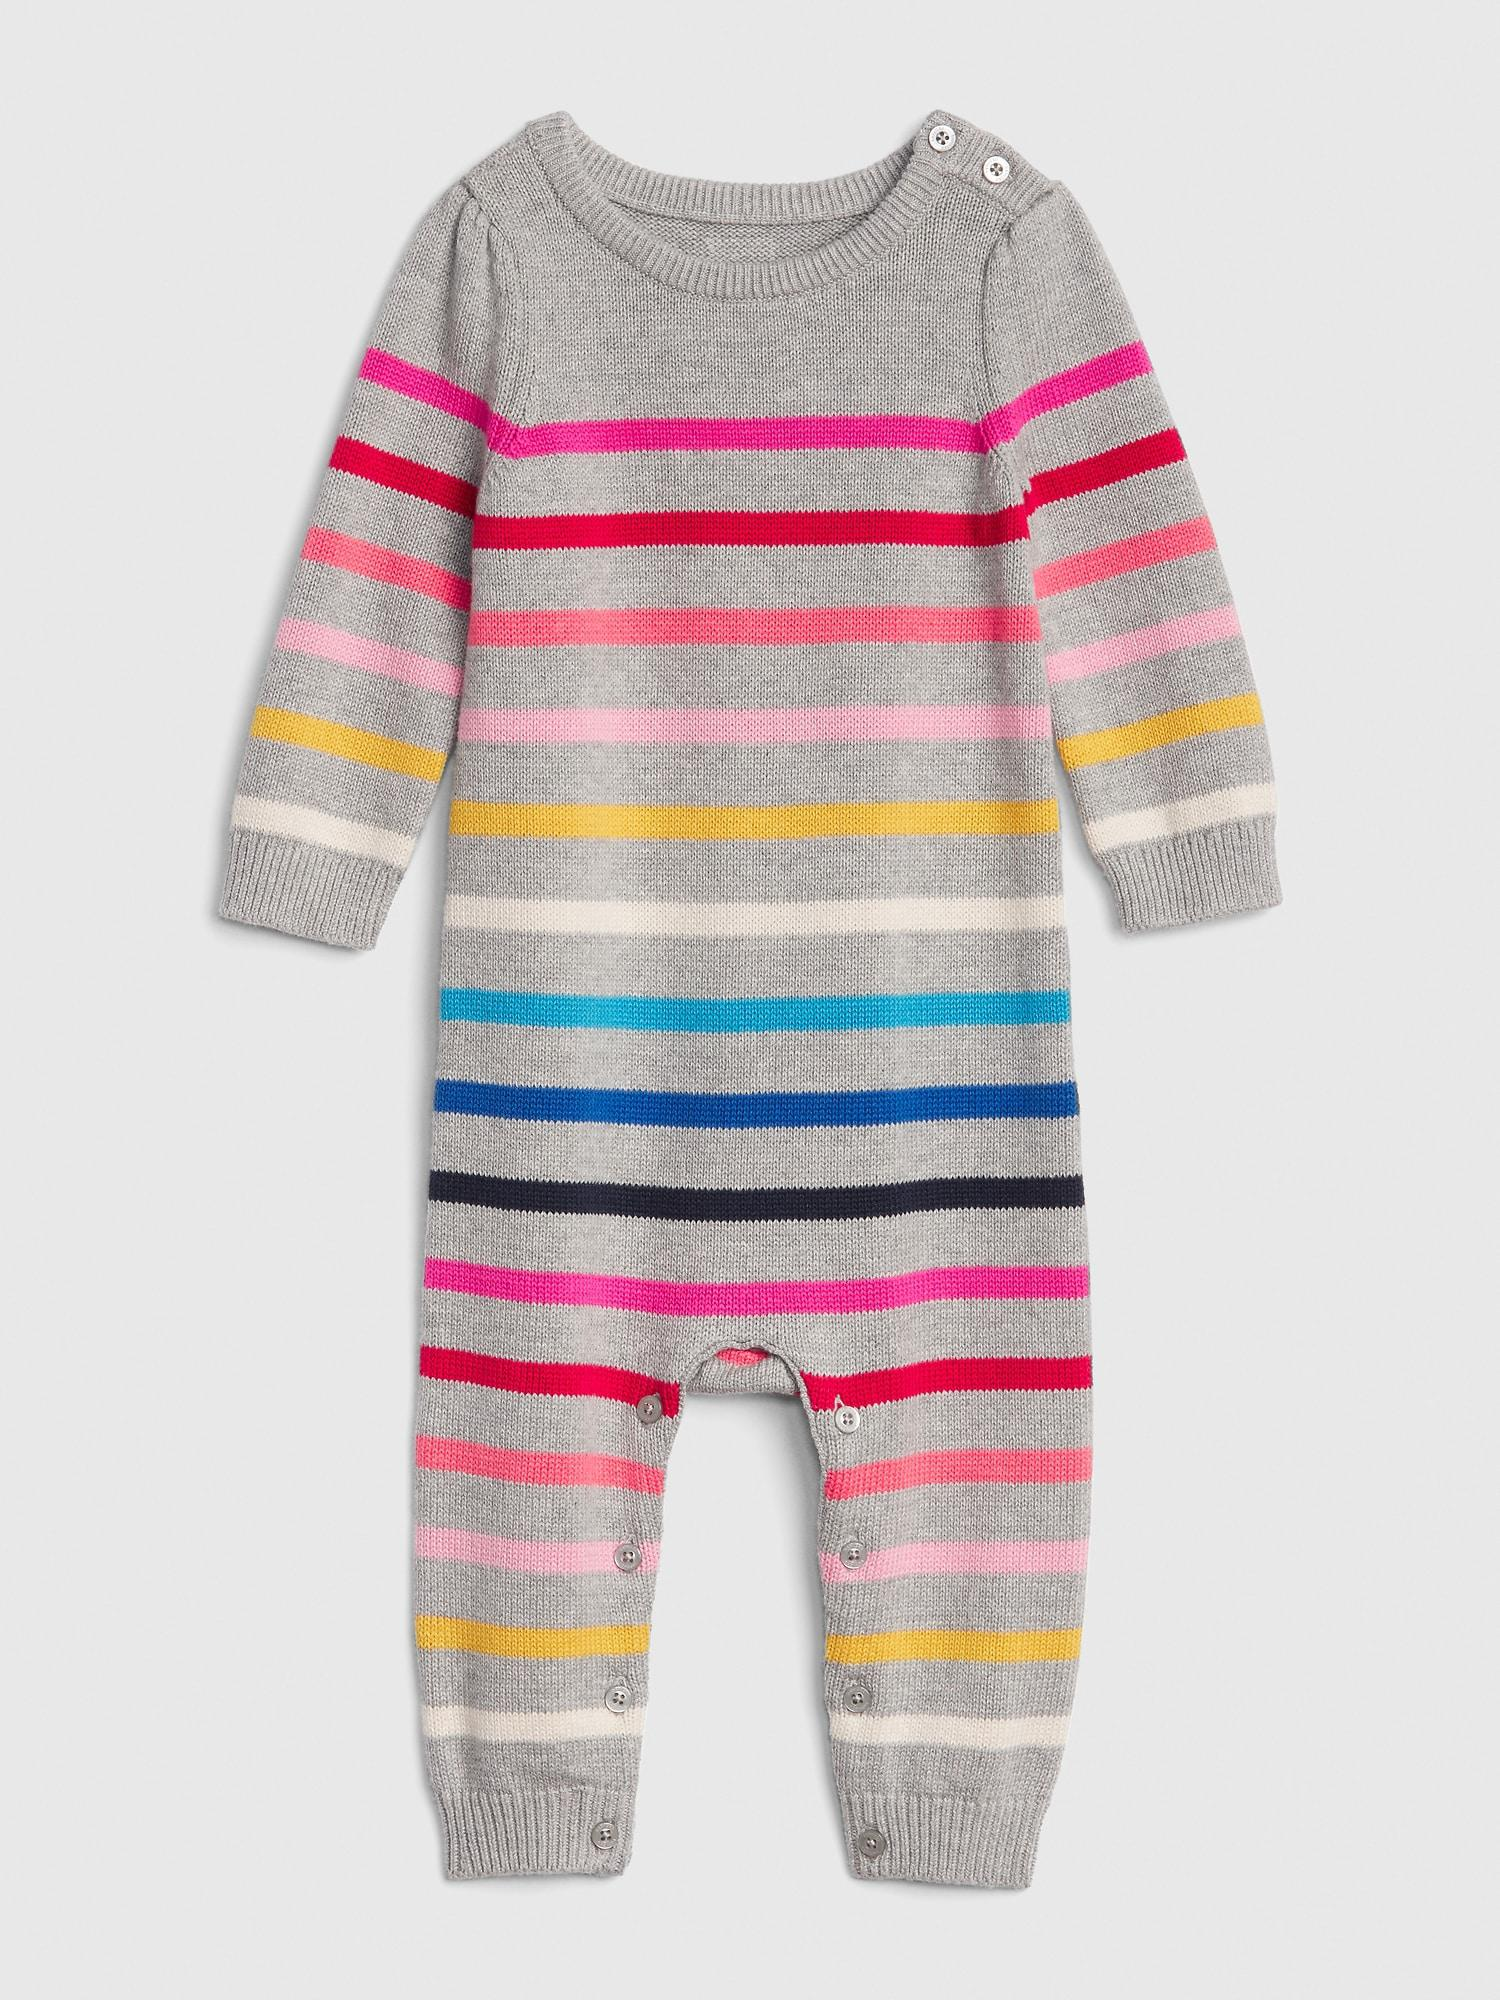 53bbf67f36f1 Lyst - Gap Crazy Stripe Sweater One-piece